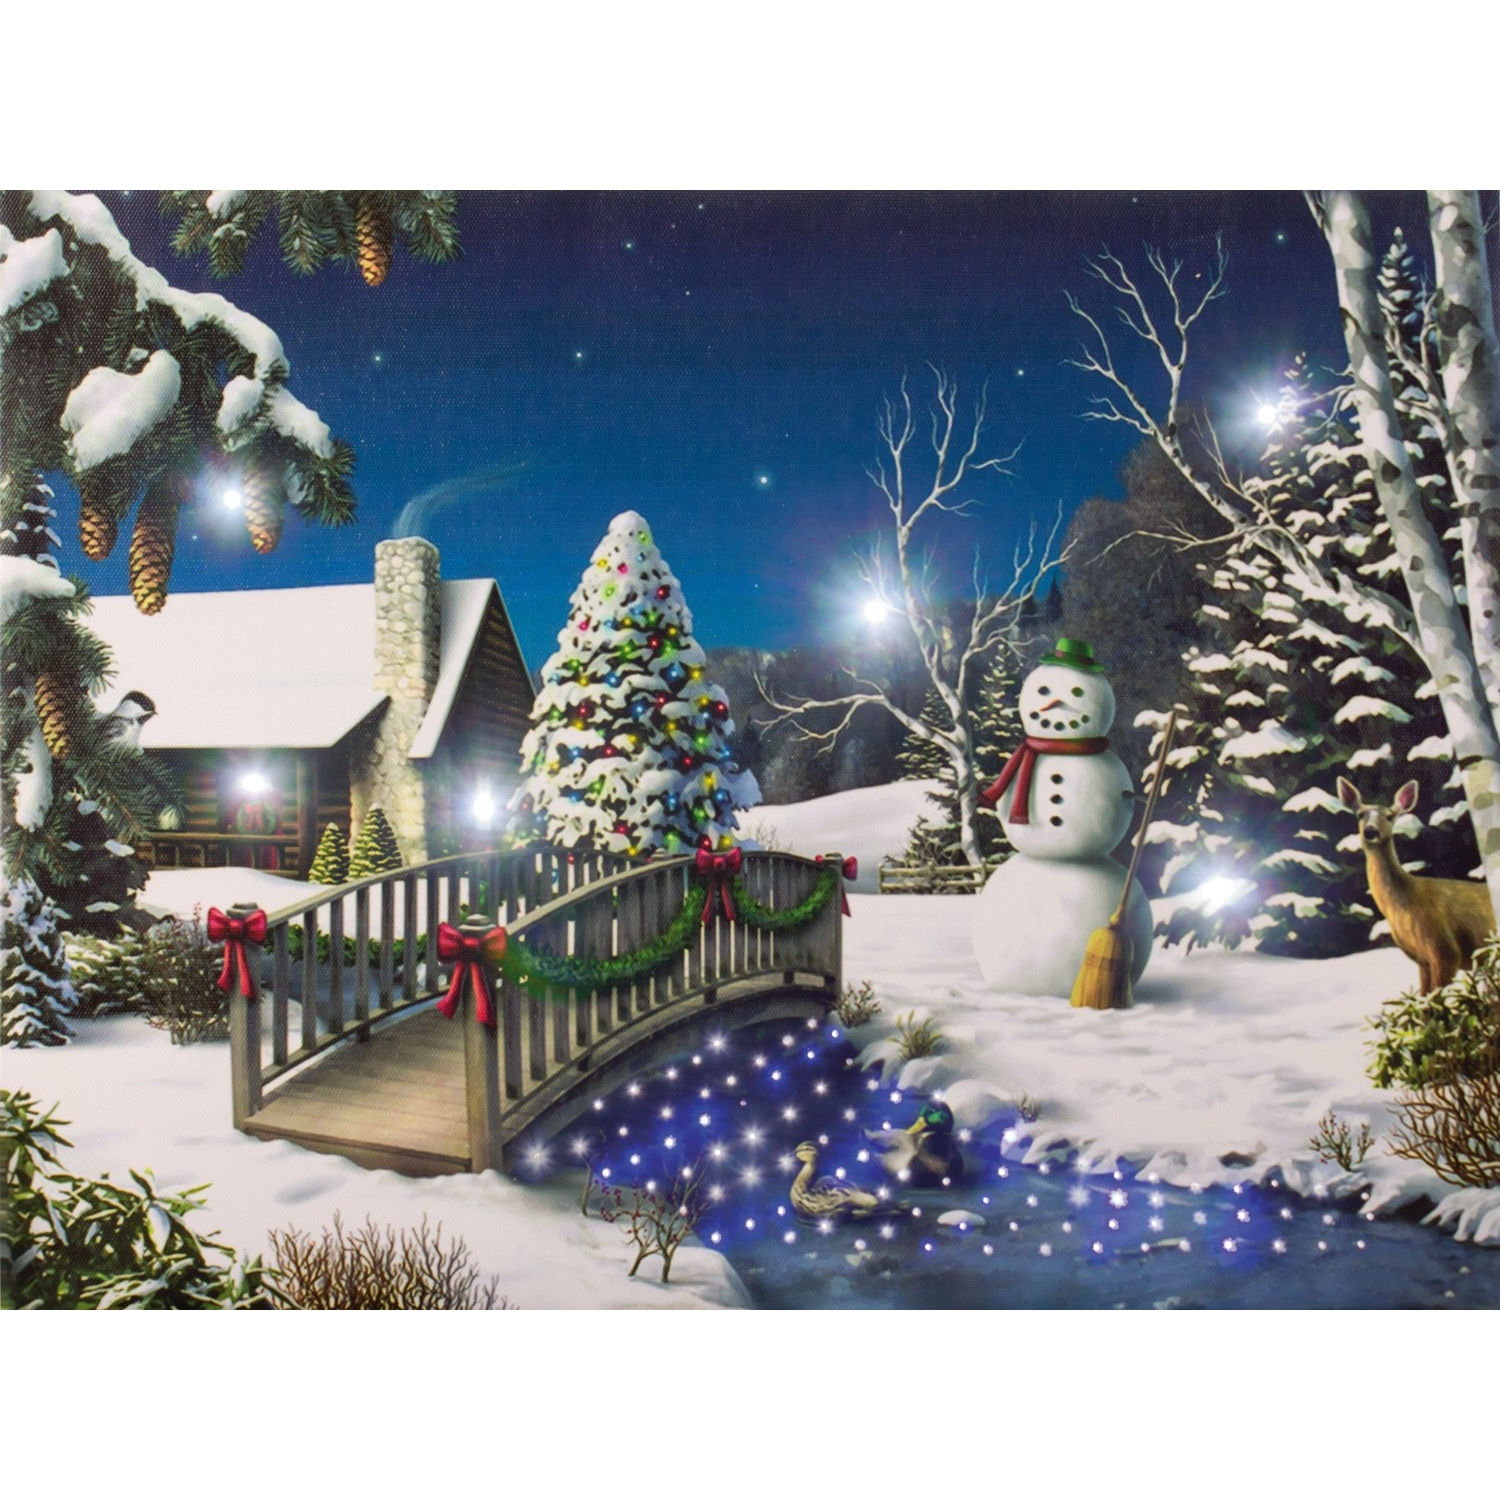 led bild winterlandschaft am bach 40x30 cm wanddekoration weihnachten ebay. Black Bedroom Furniture Sets. Home Design Ideas